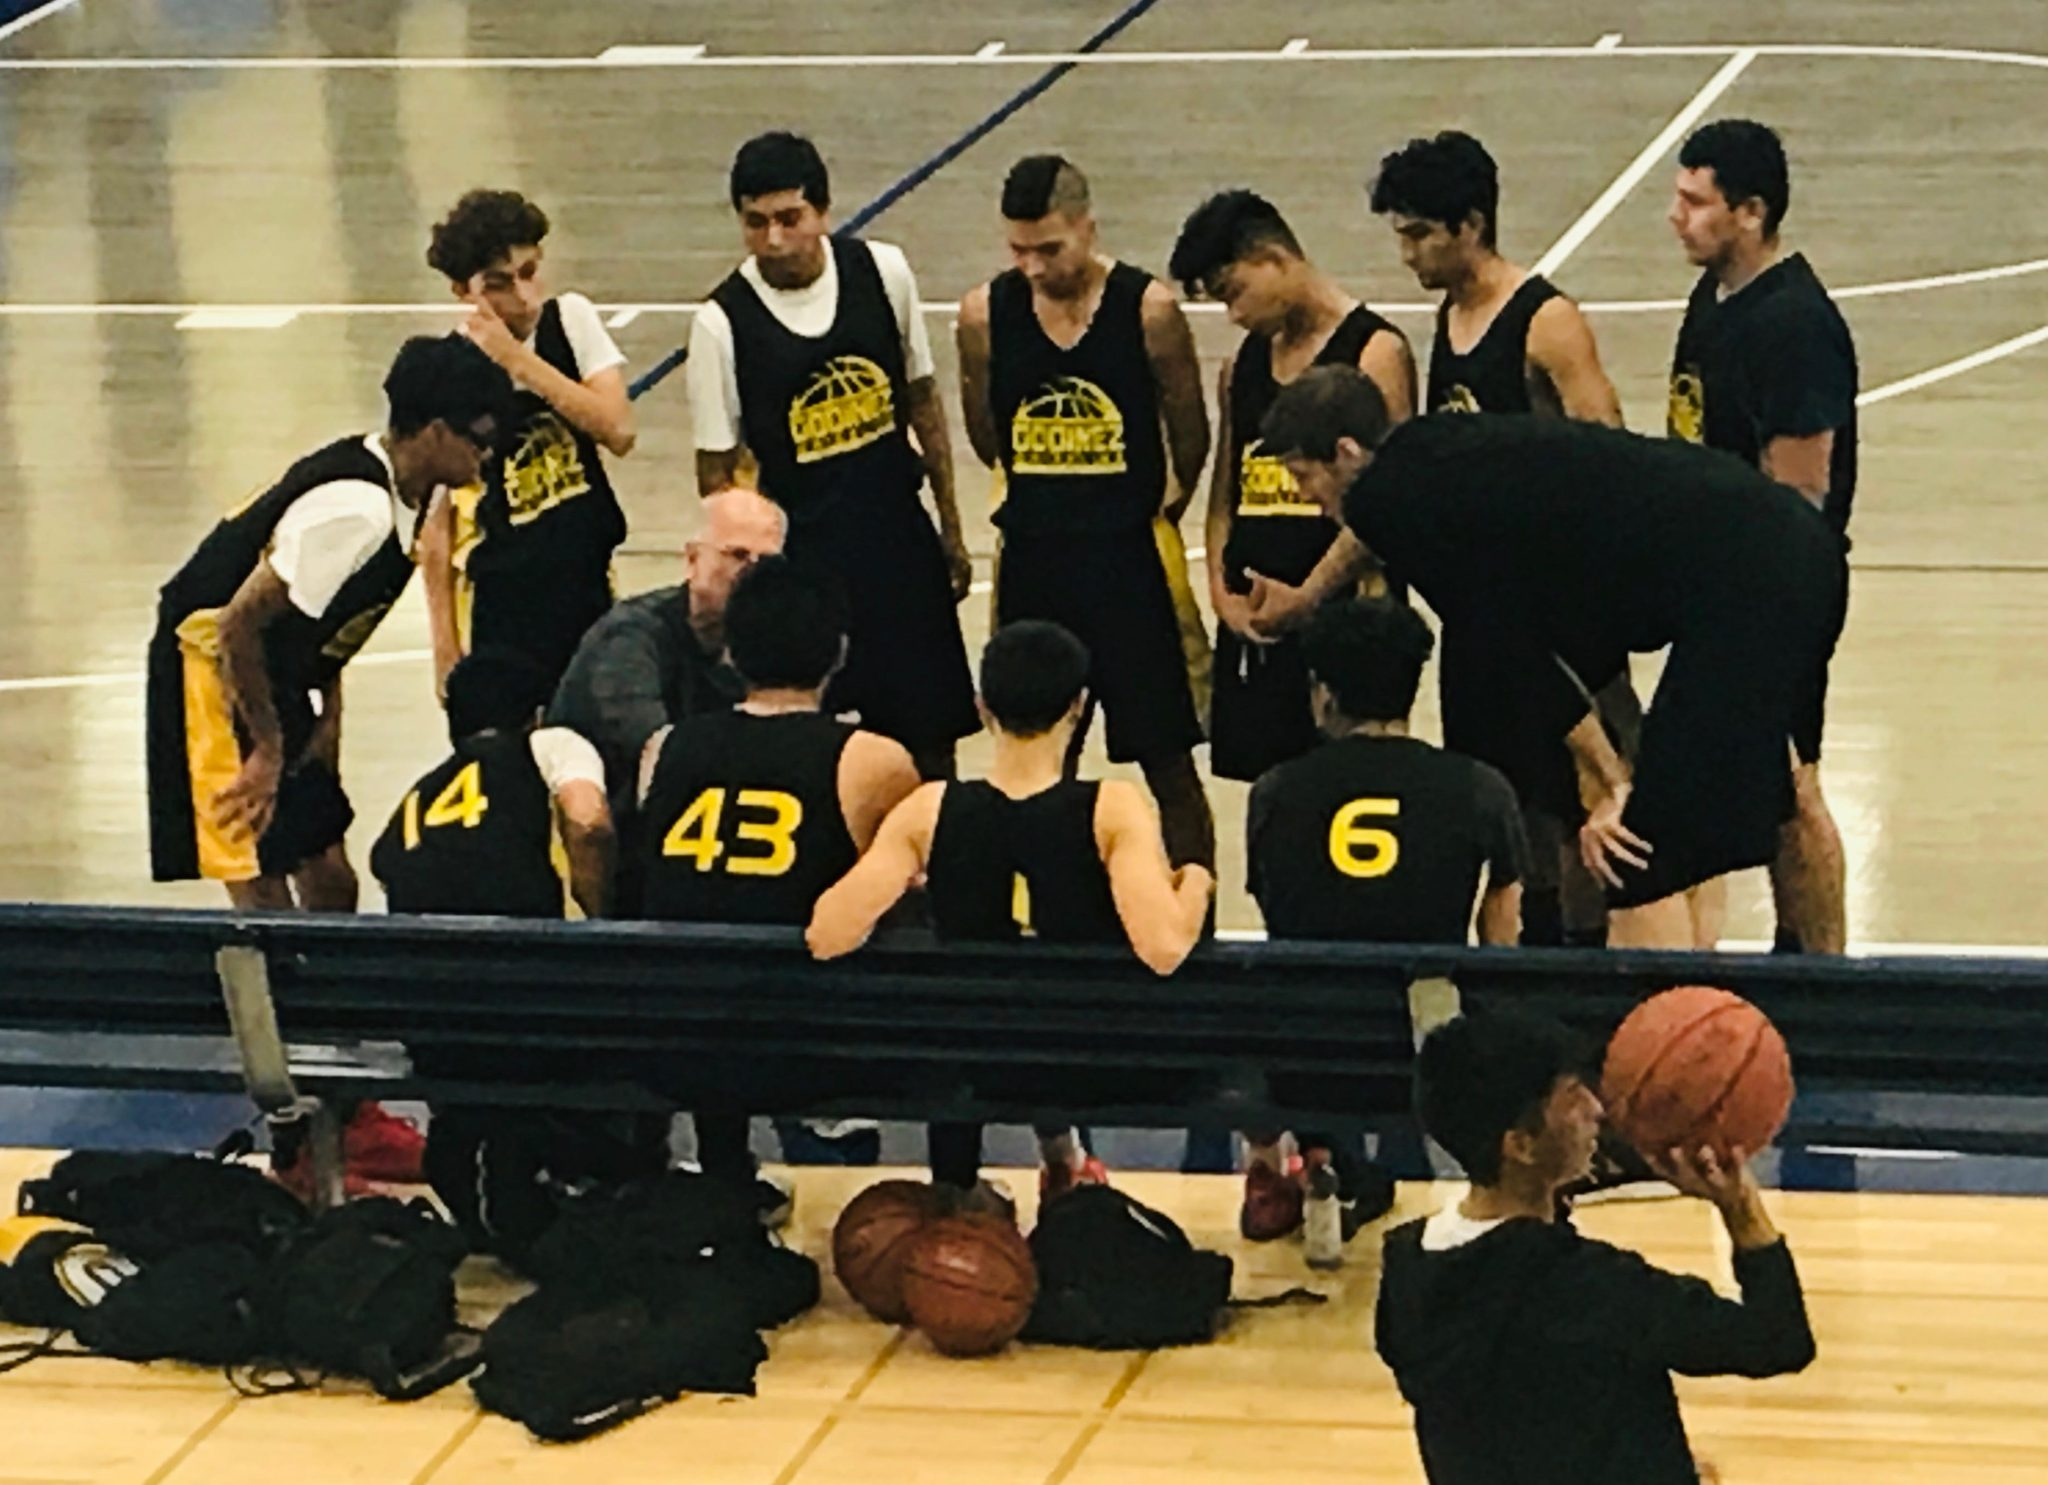 Local teams tuning up during summer league games in Santa Ana high